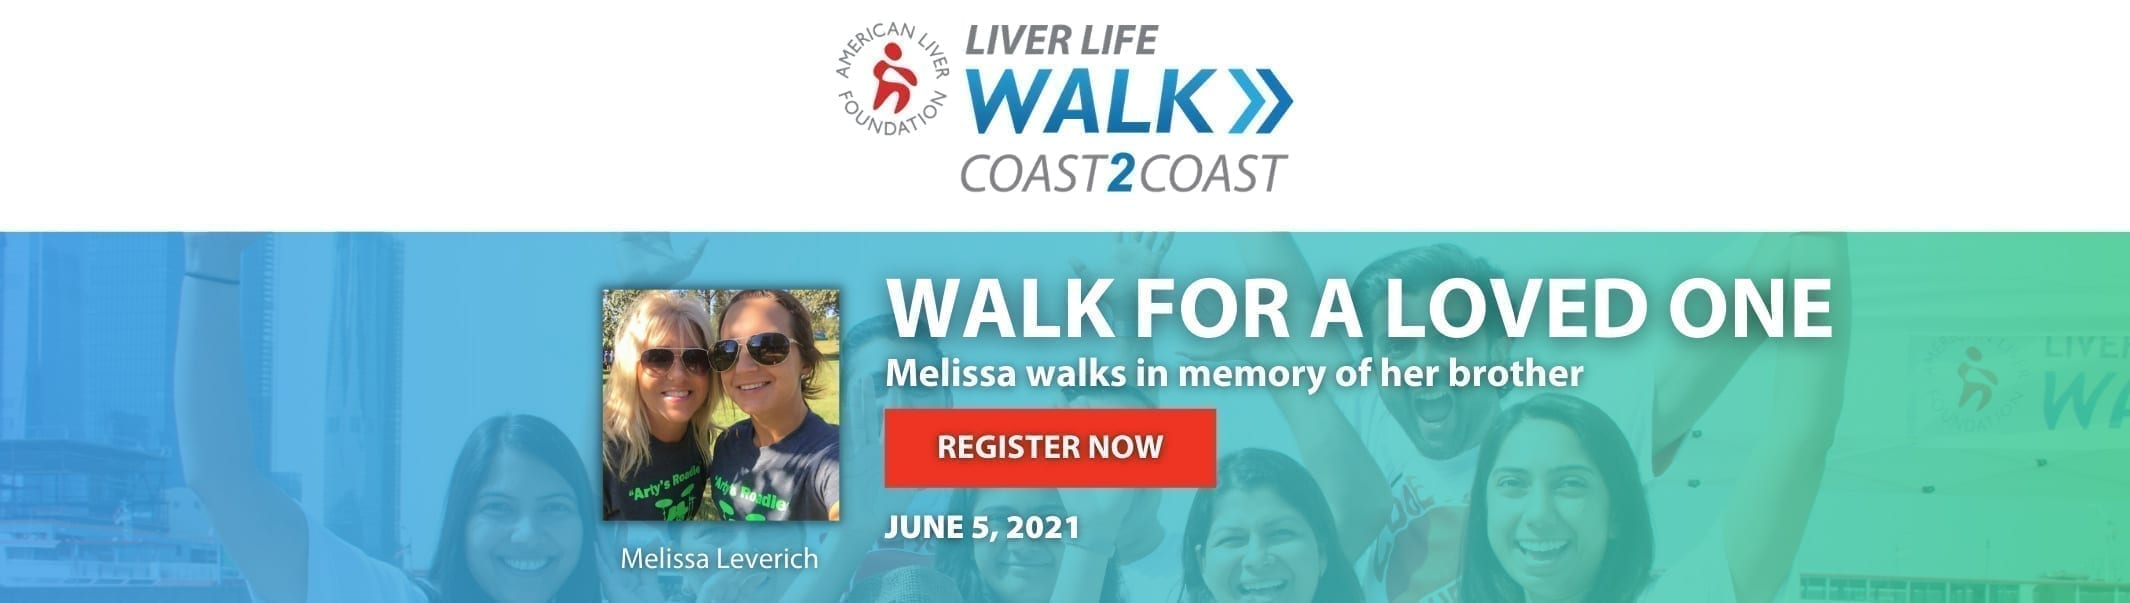 Liver Life Walk Walk for a Loved One